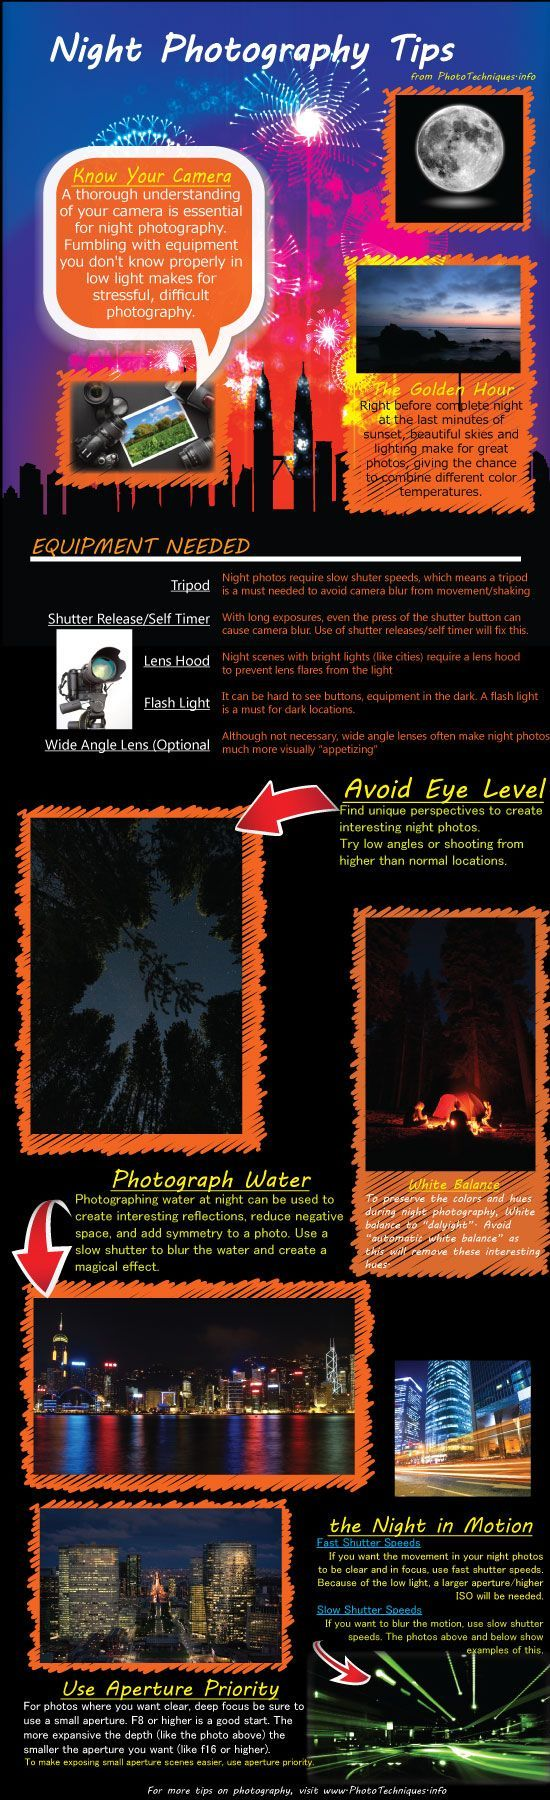 Night Photography Tips To Increase Photo Quality [Infographic]